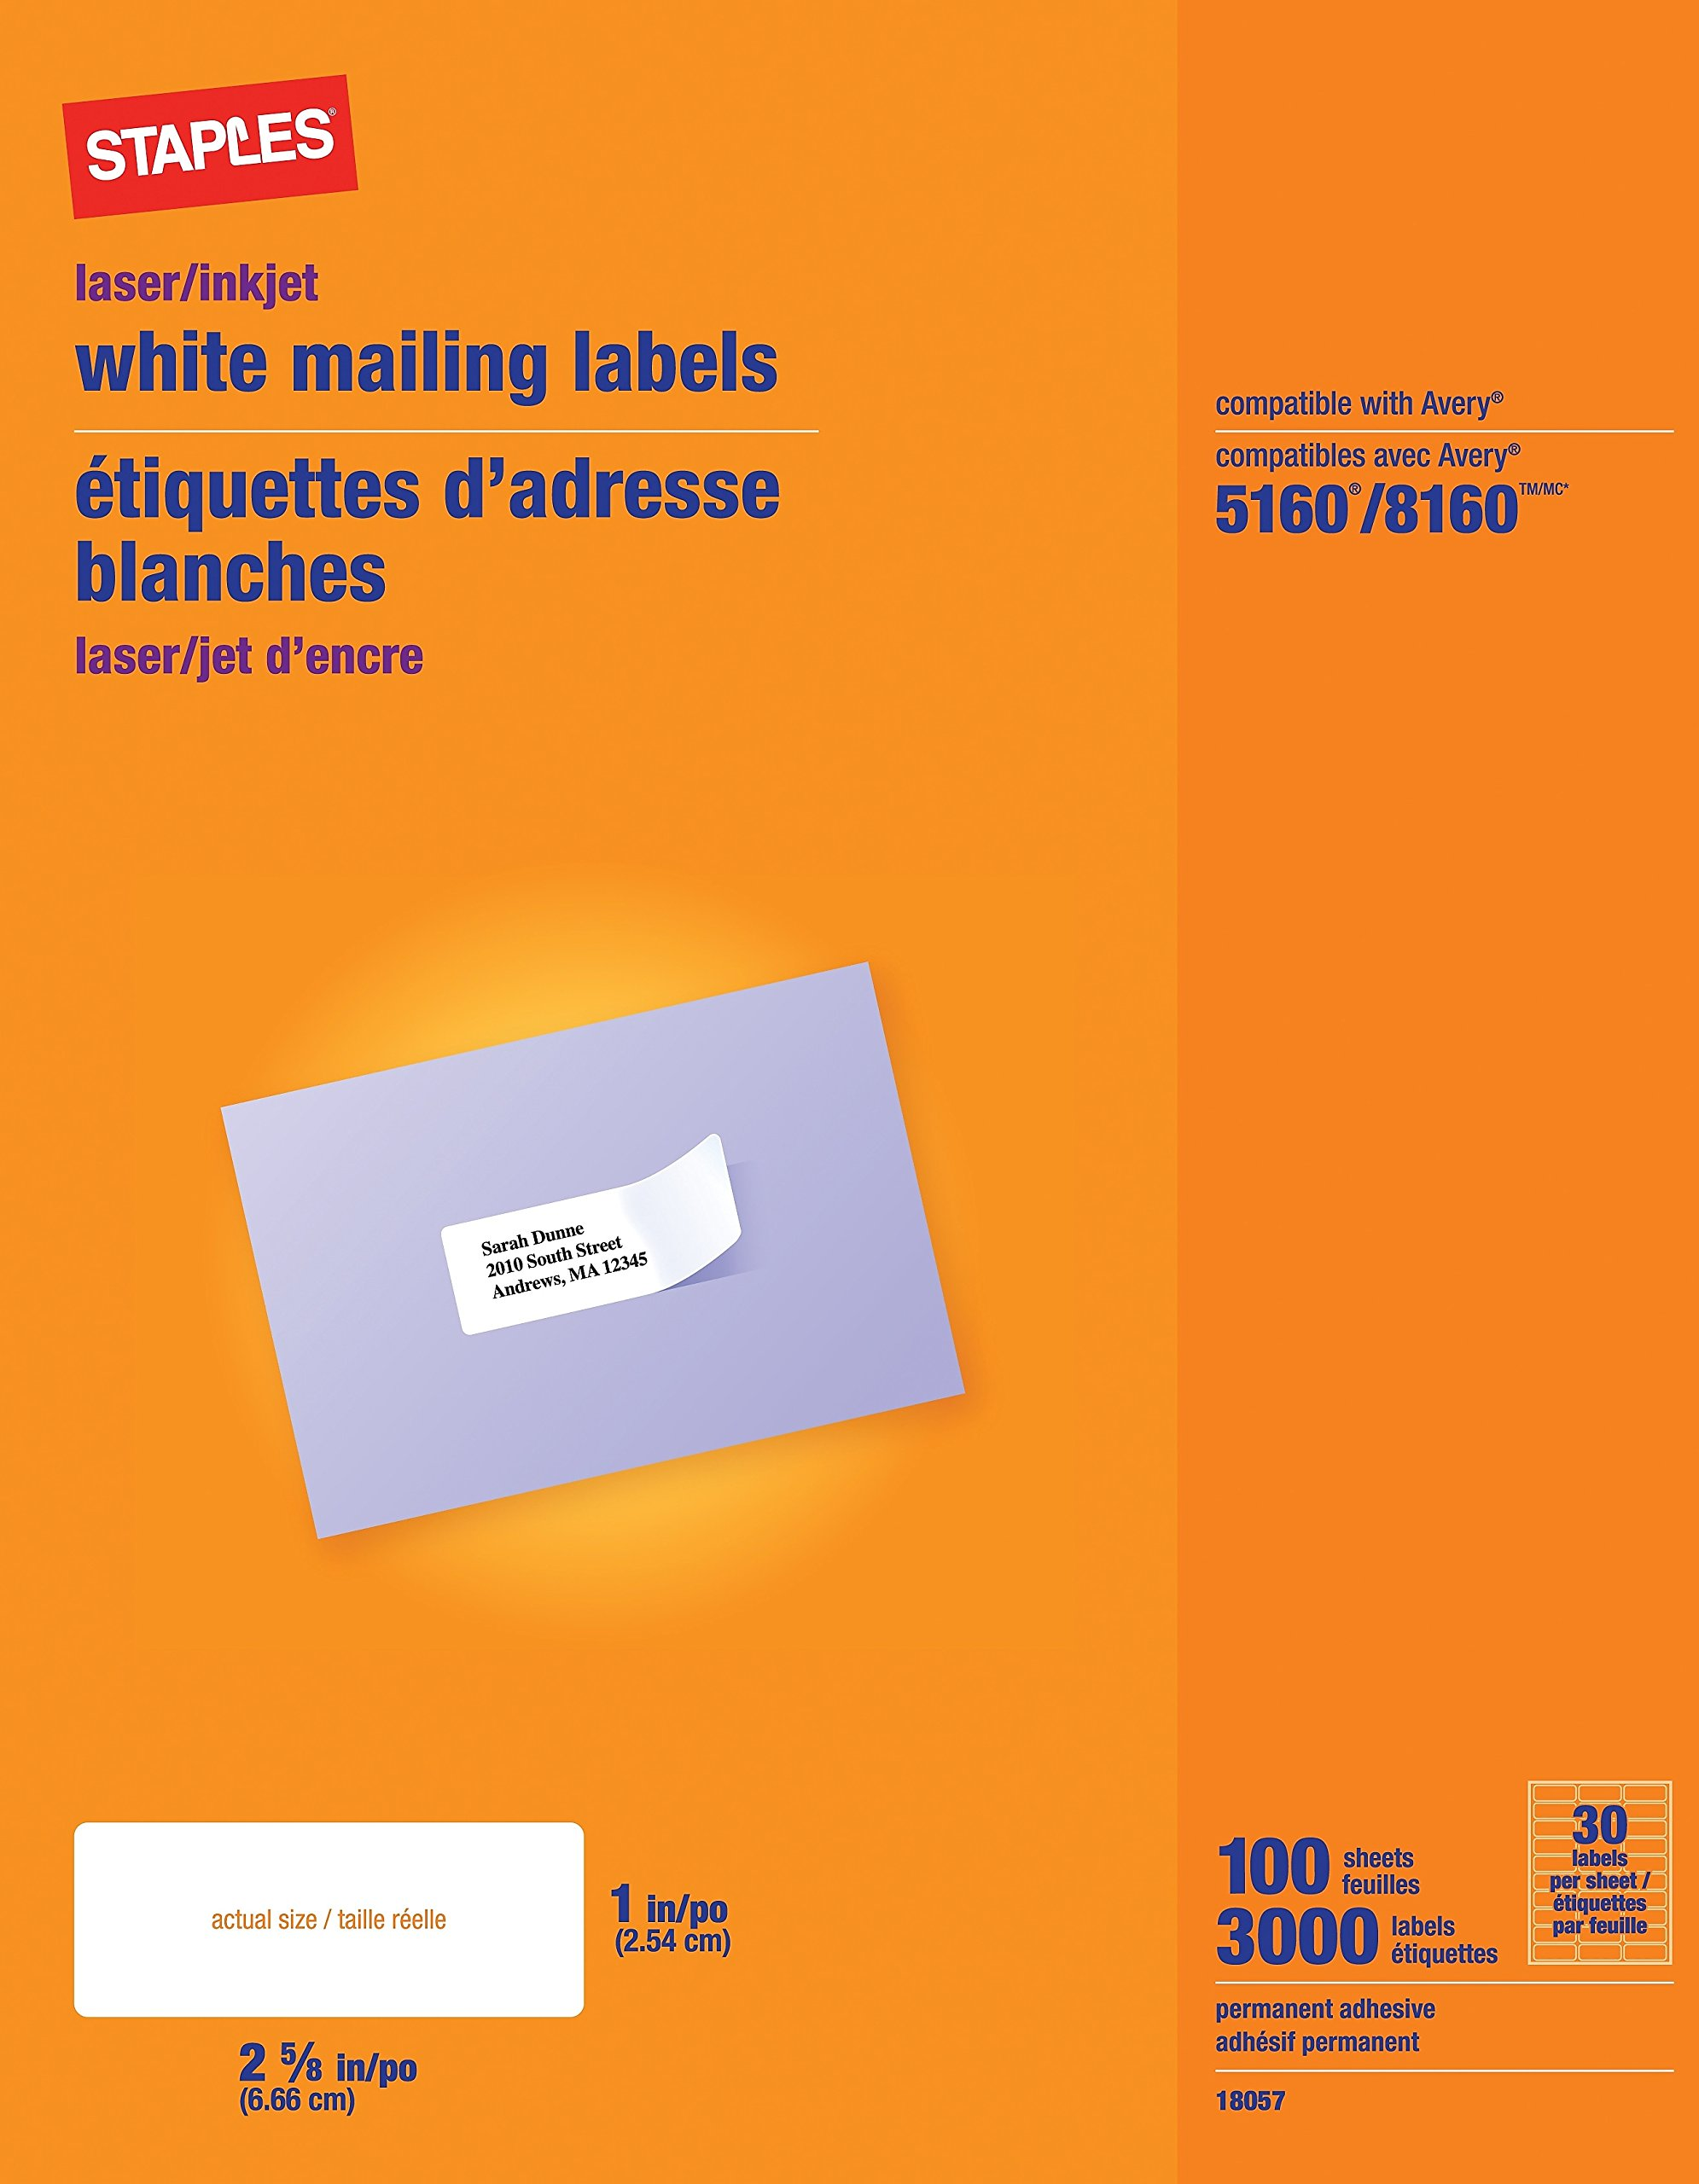 Staples White Mailing Labels for Laser Printers, 1 x 2.62 Inch, 100 Sheets, 3000 Labels by Staples